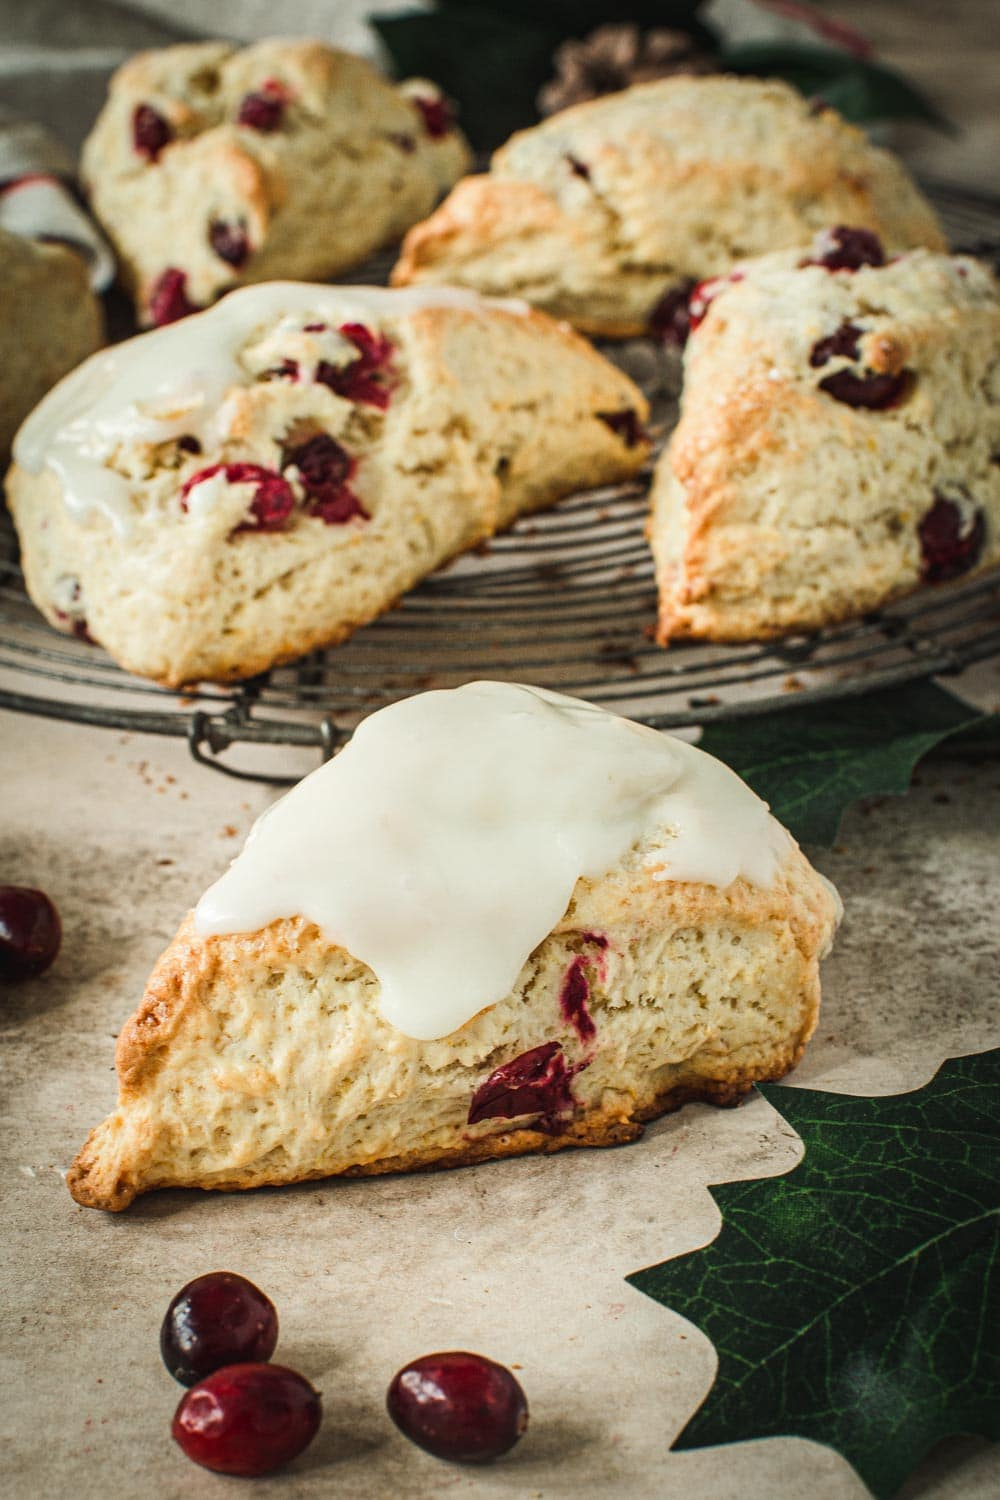 Cranberry orange scone covered in an orange glaze with scones behind it on a wire rack.